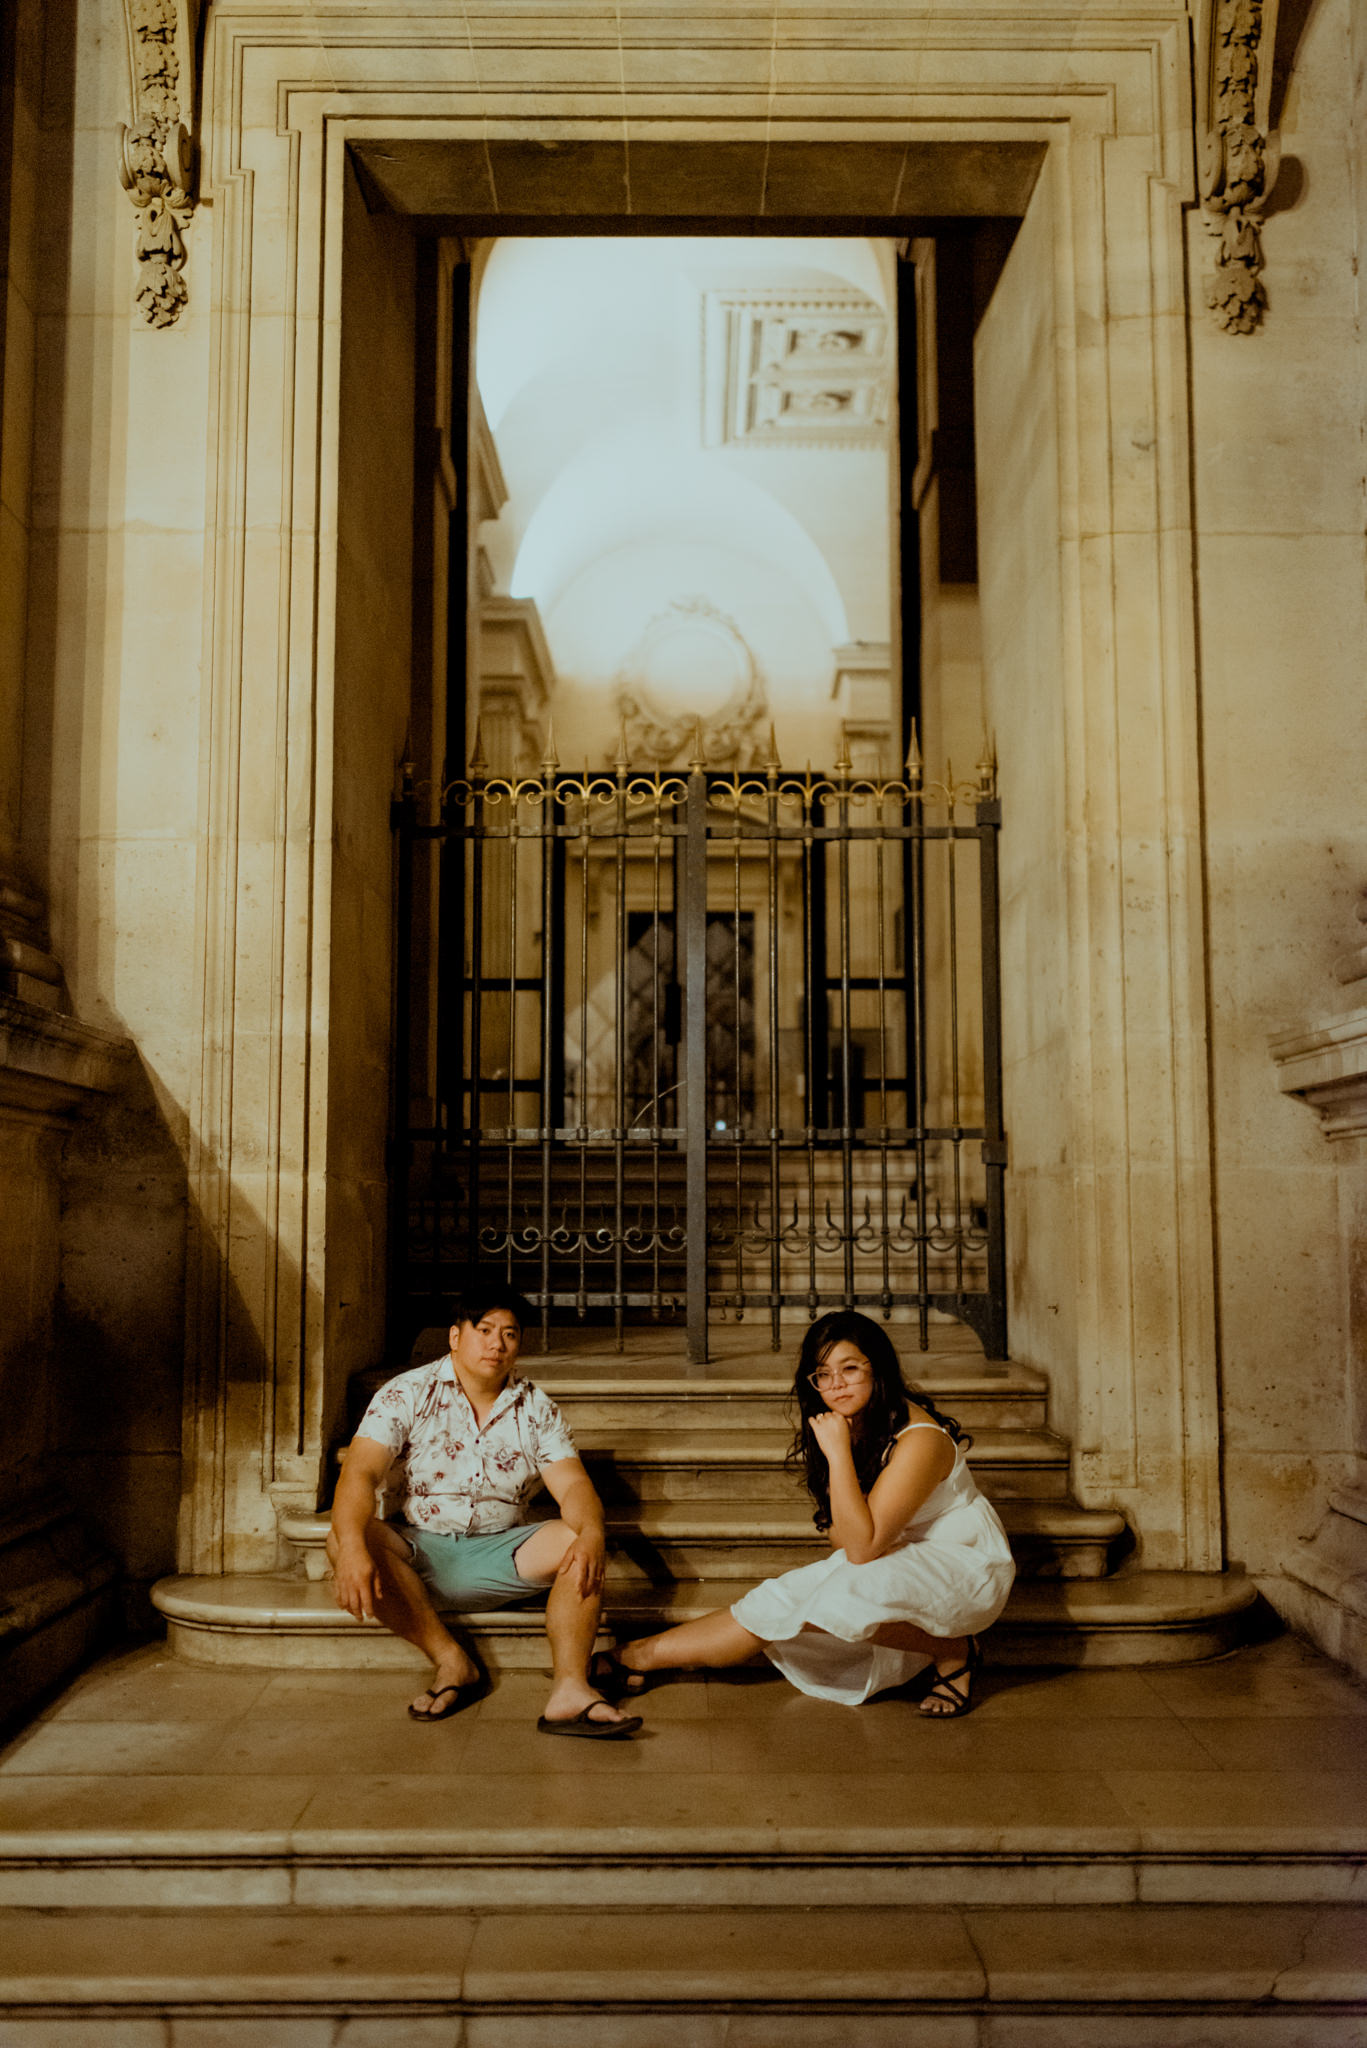 Asian couple pose seriously on the steps at the Louvre, Paris.